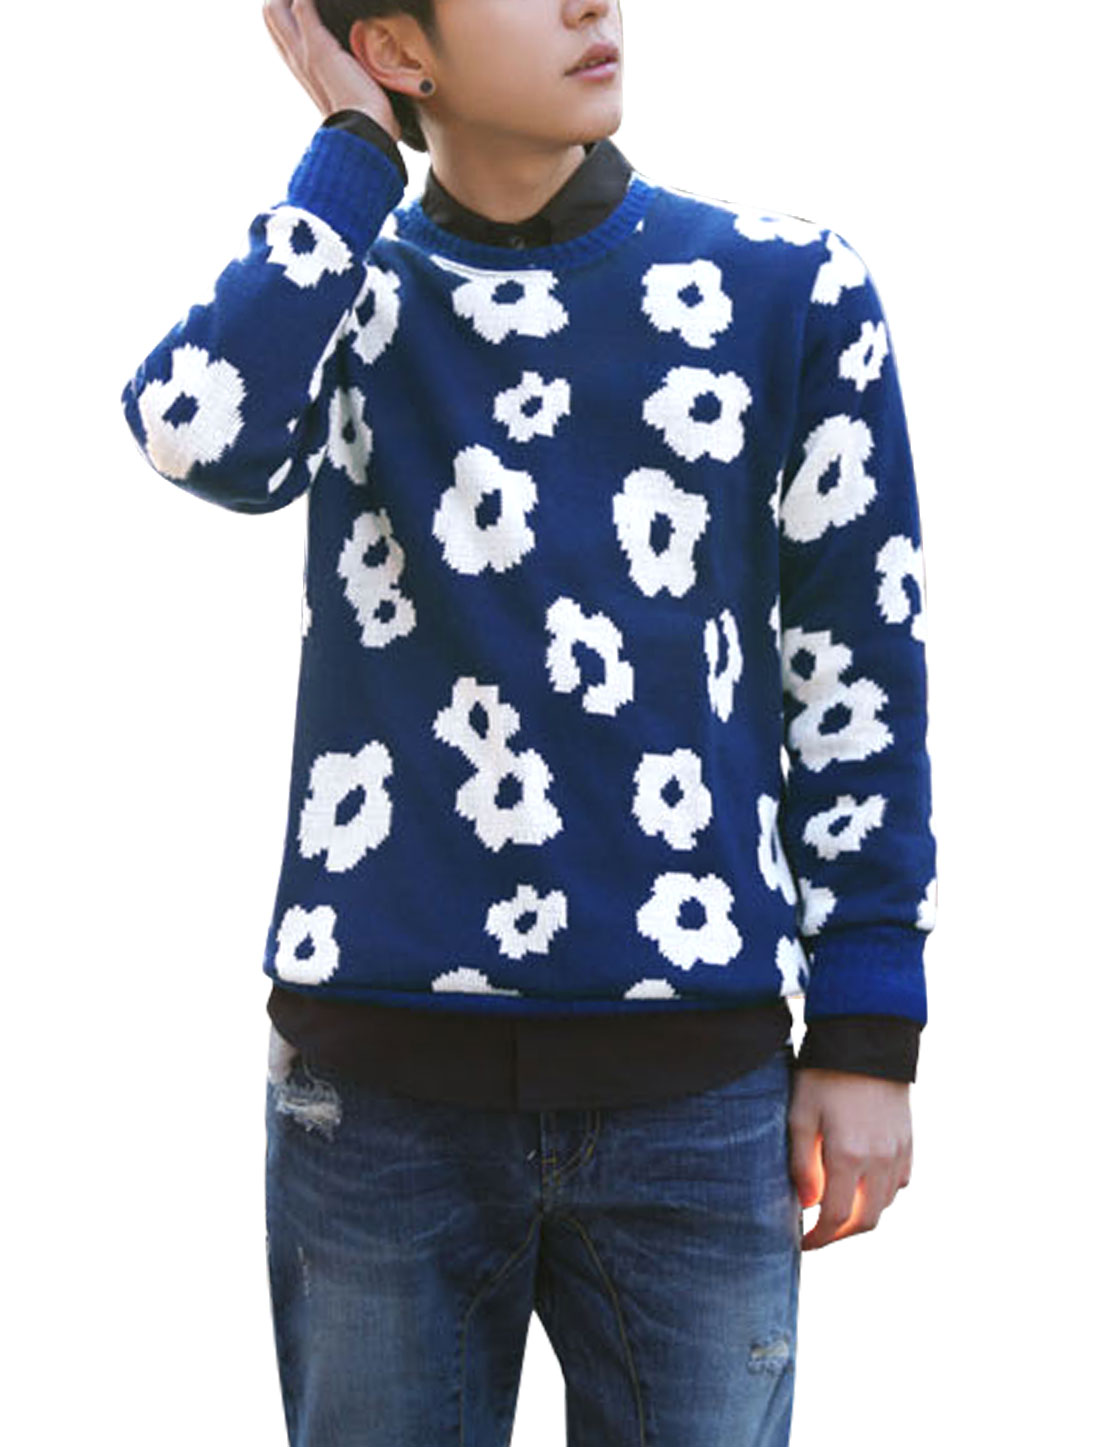 Man Allover Flower Prints Pullover Slim Fit Blue Sweater S